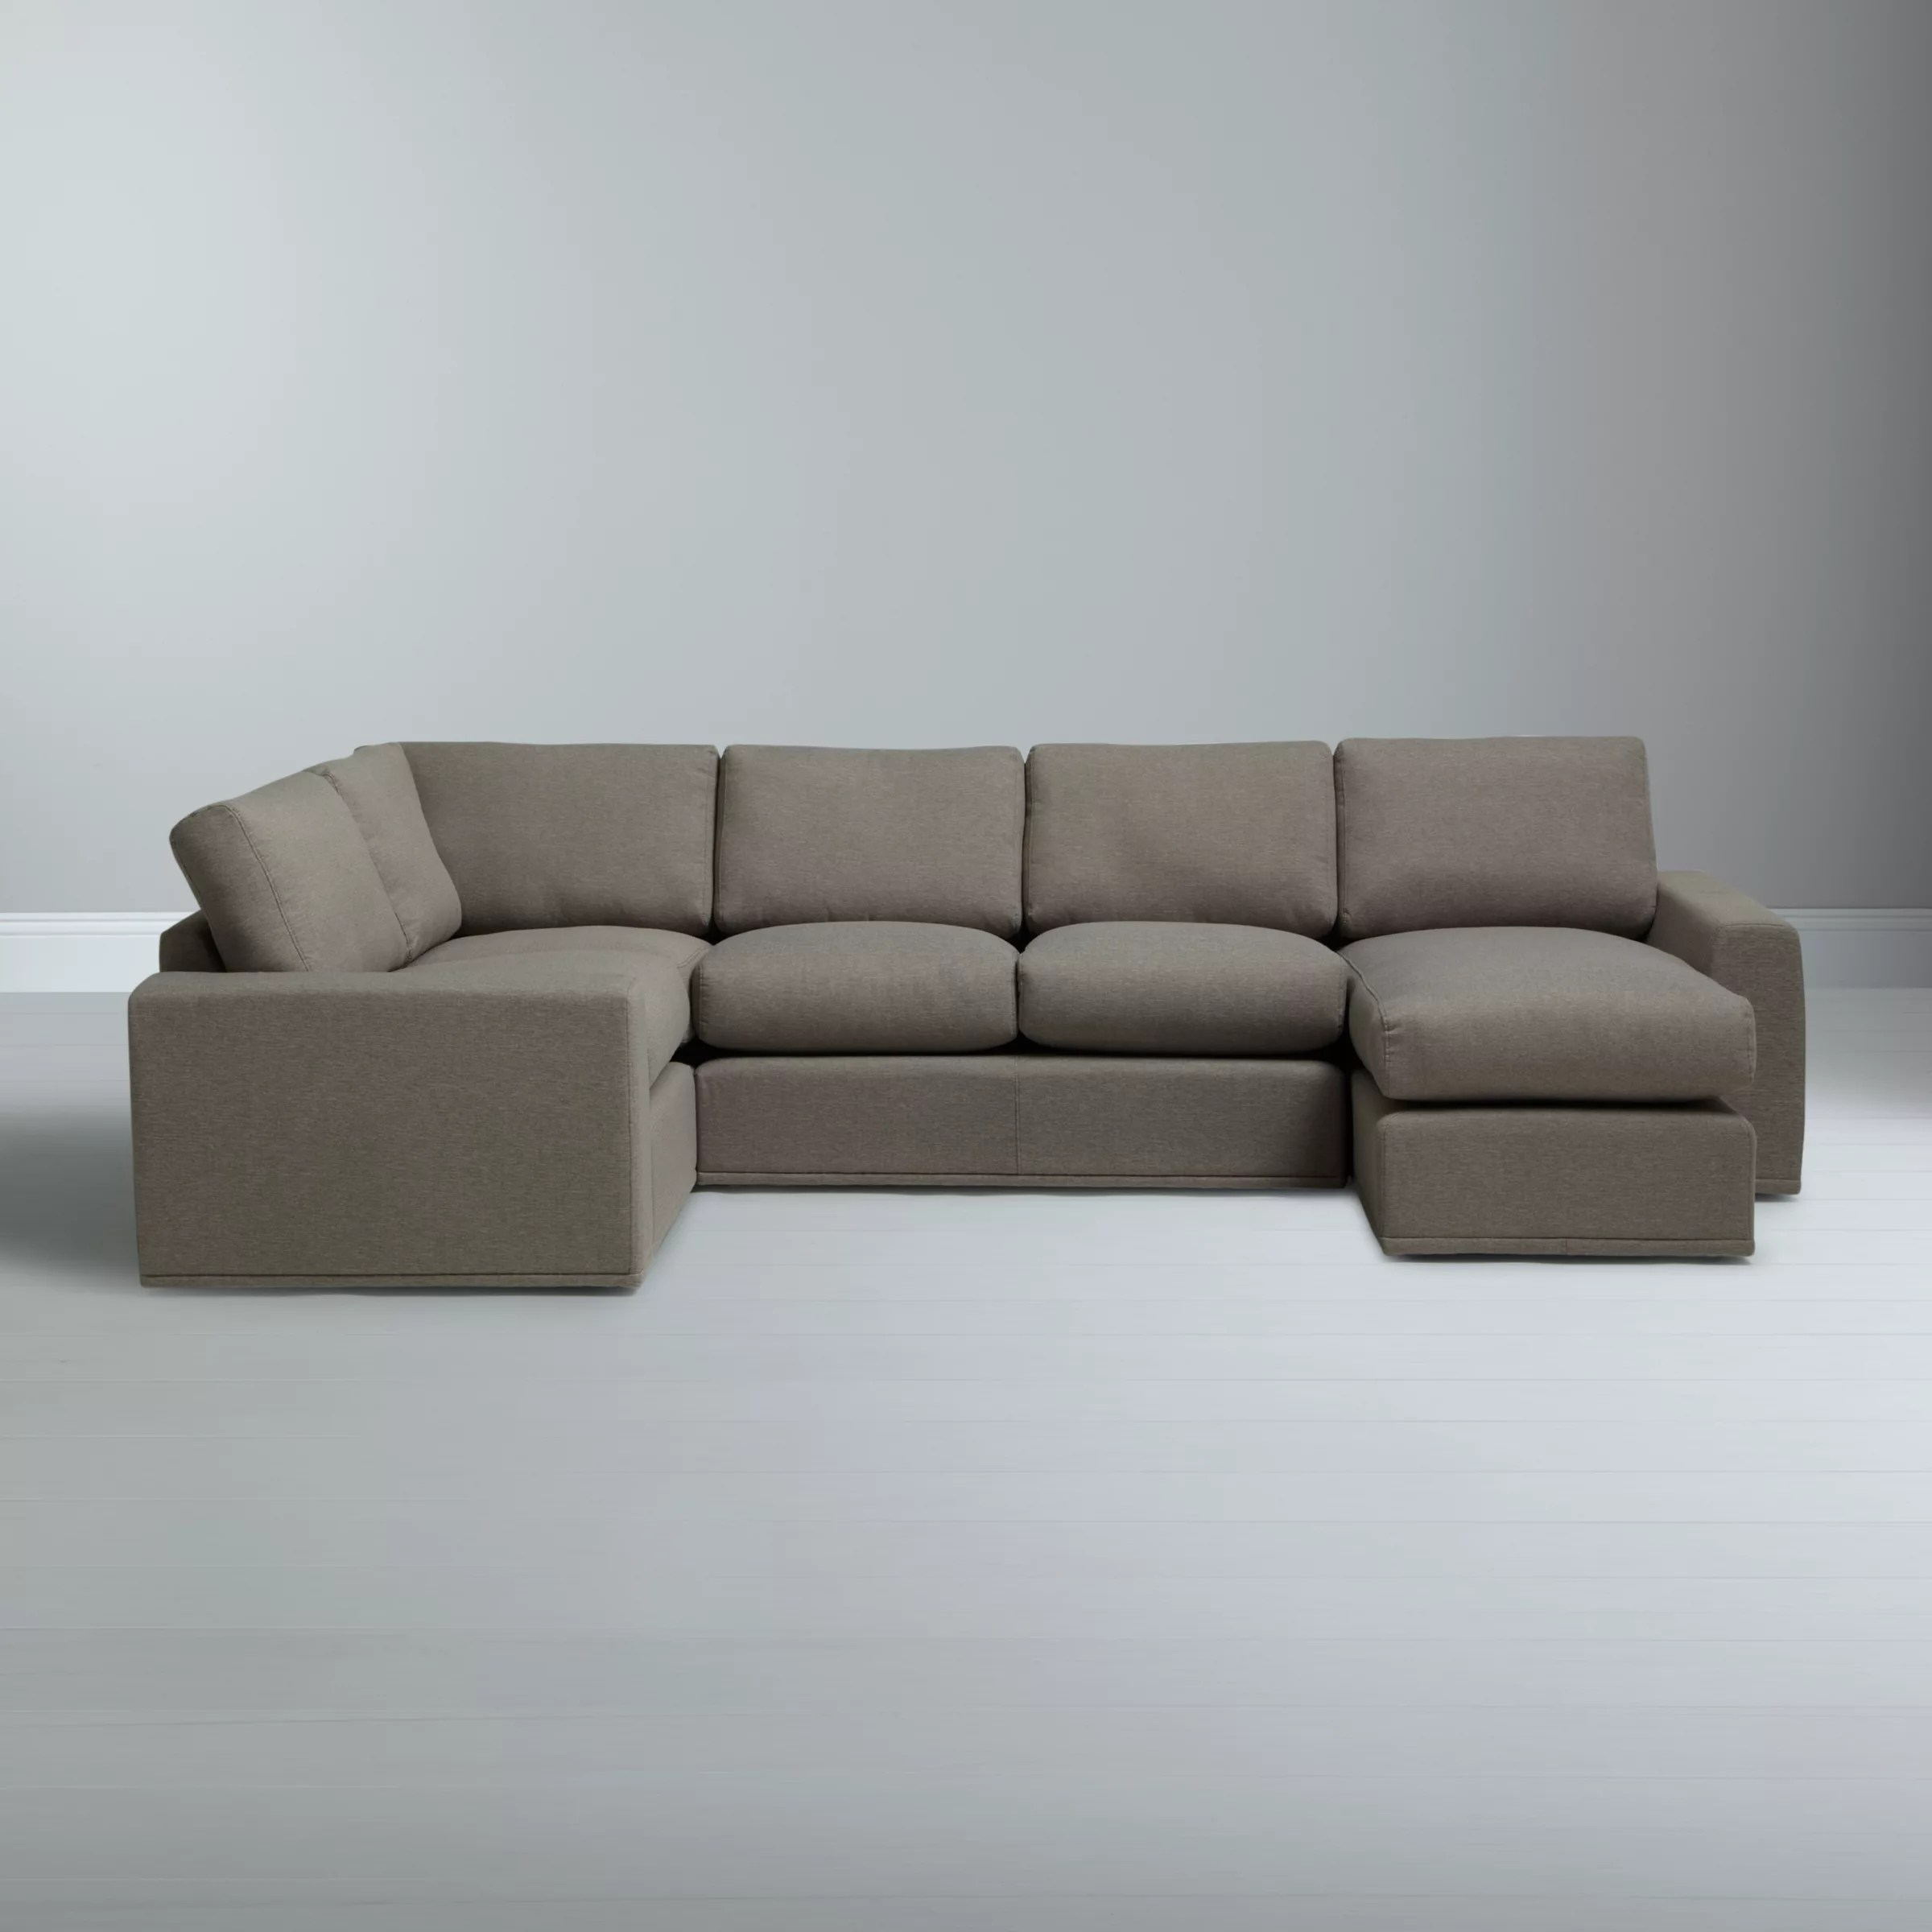 regency sofa john lewis sofas living etc buy cheap corner compare prices for